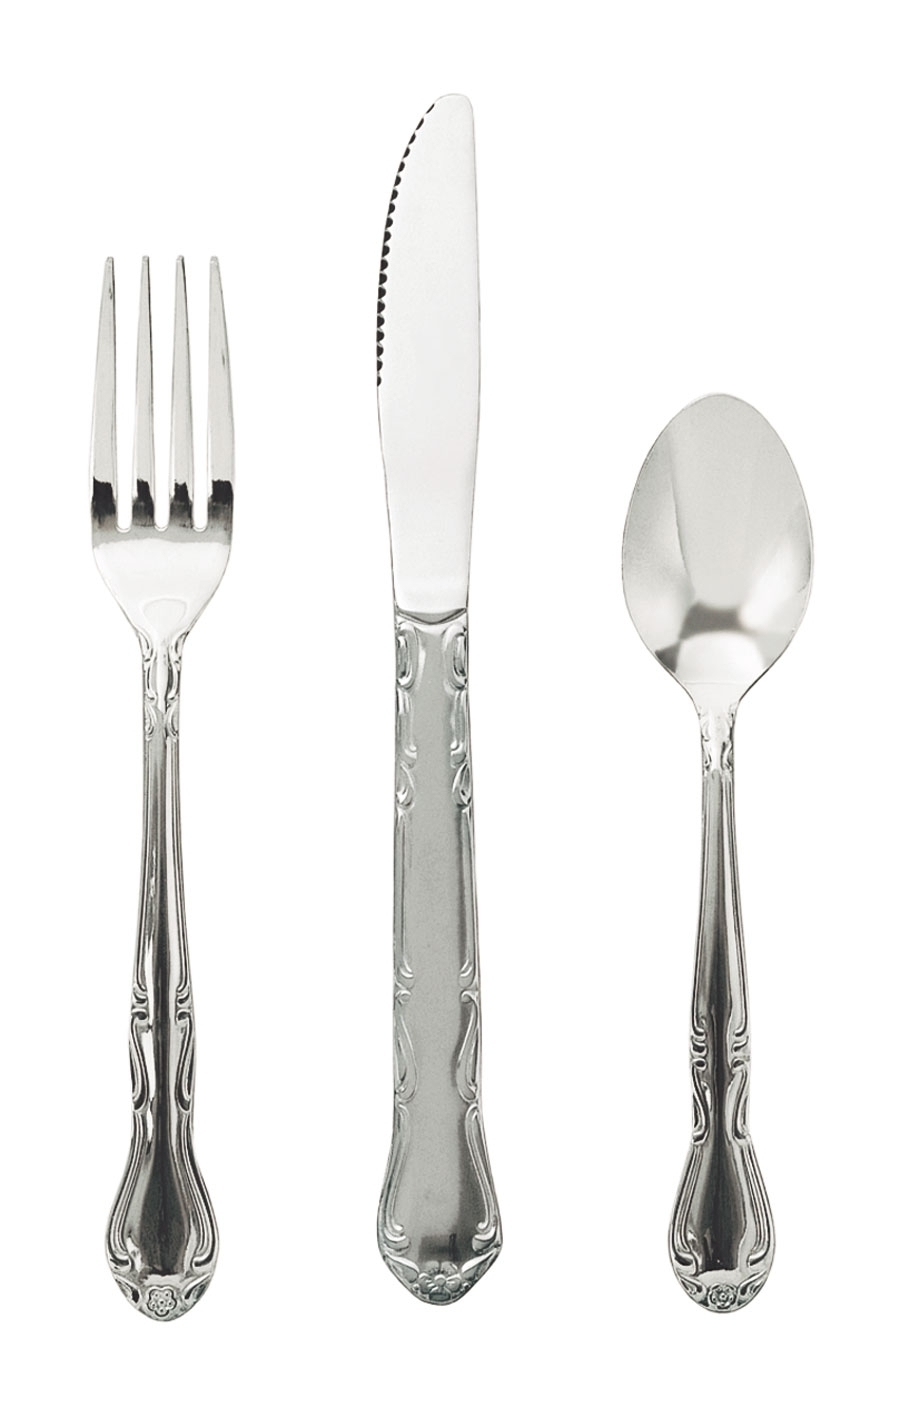 CL-65 Update International - Dinner Fork, 18/0 stainless steel, mirror polish